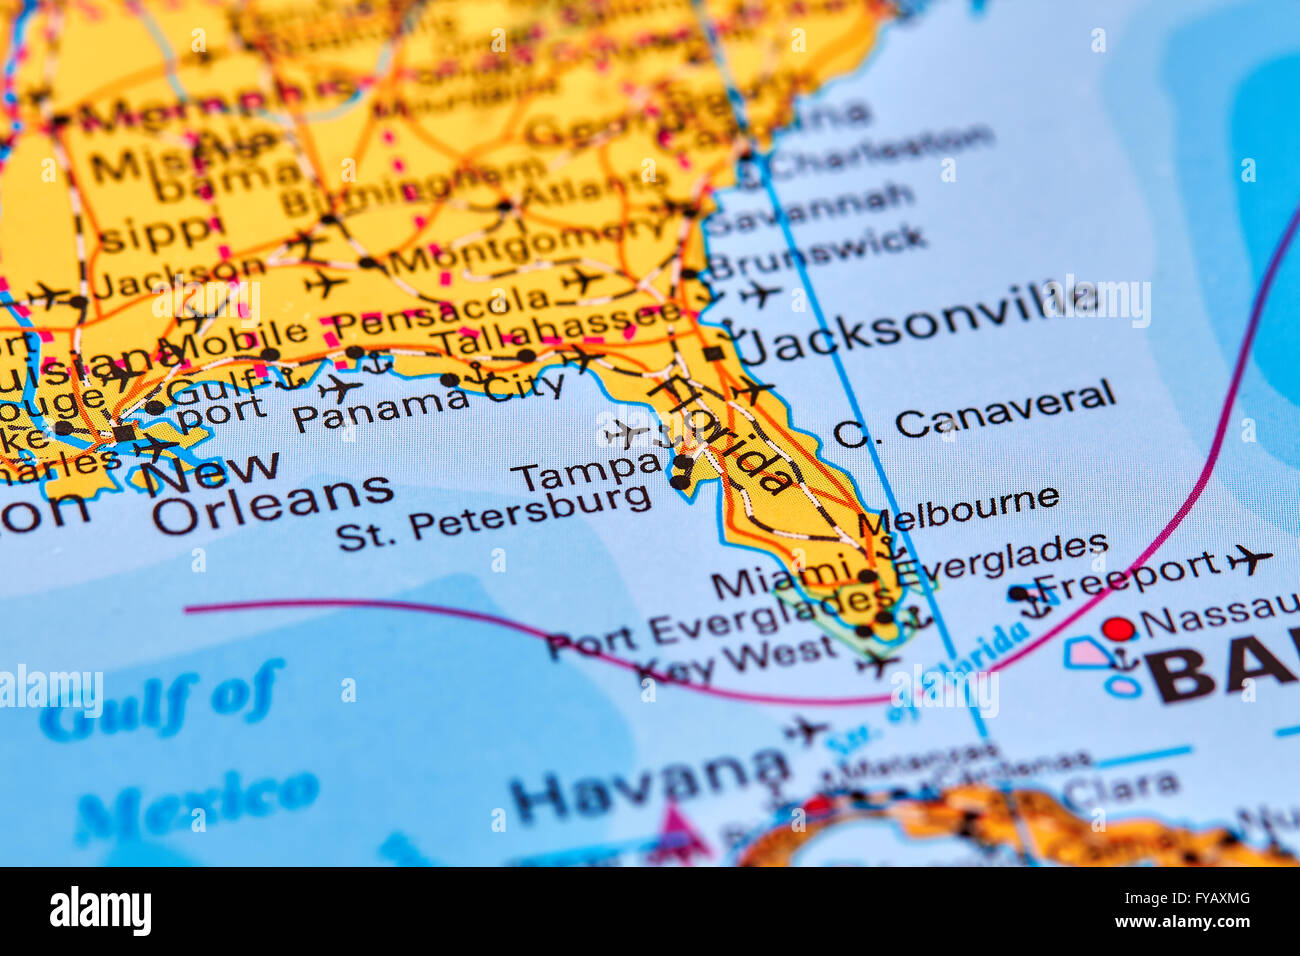 Florida Map Stock Photos & Florida Map Stock Images - Alamy